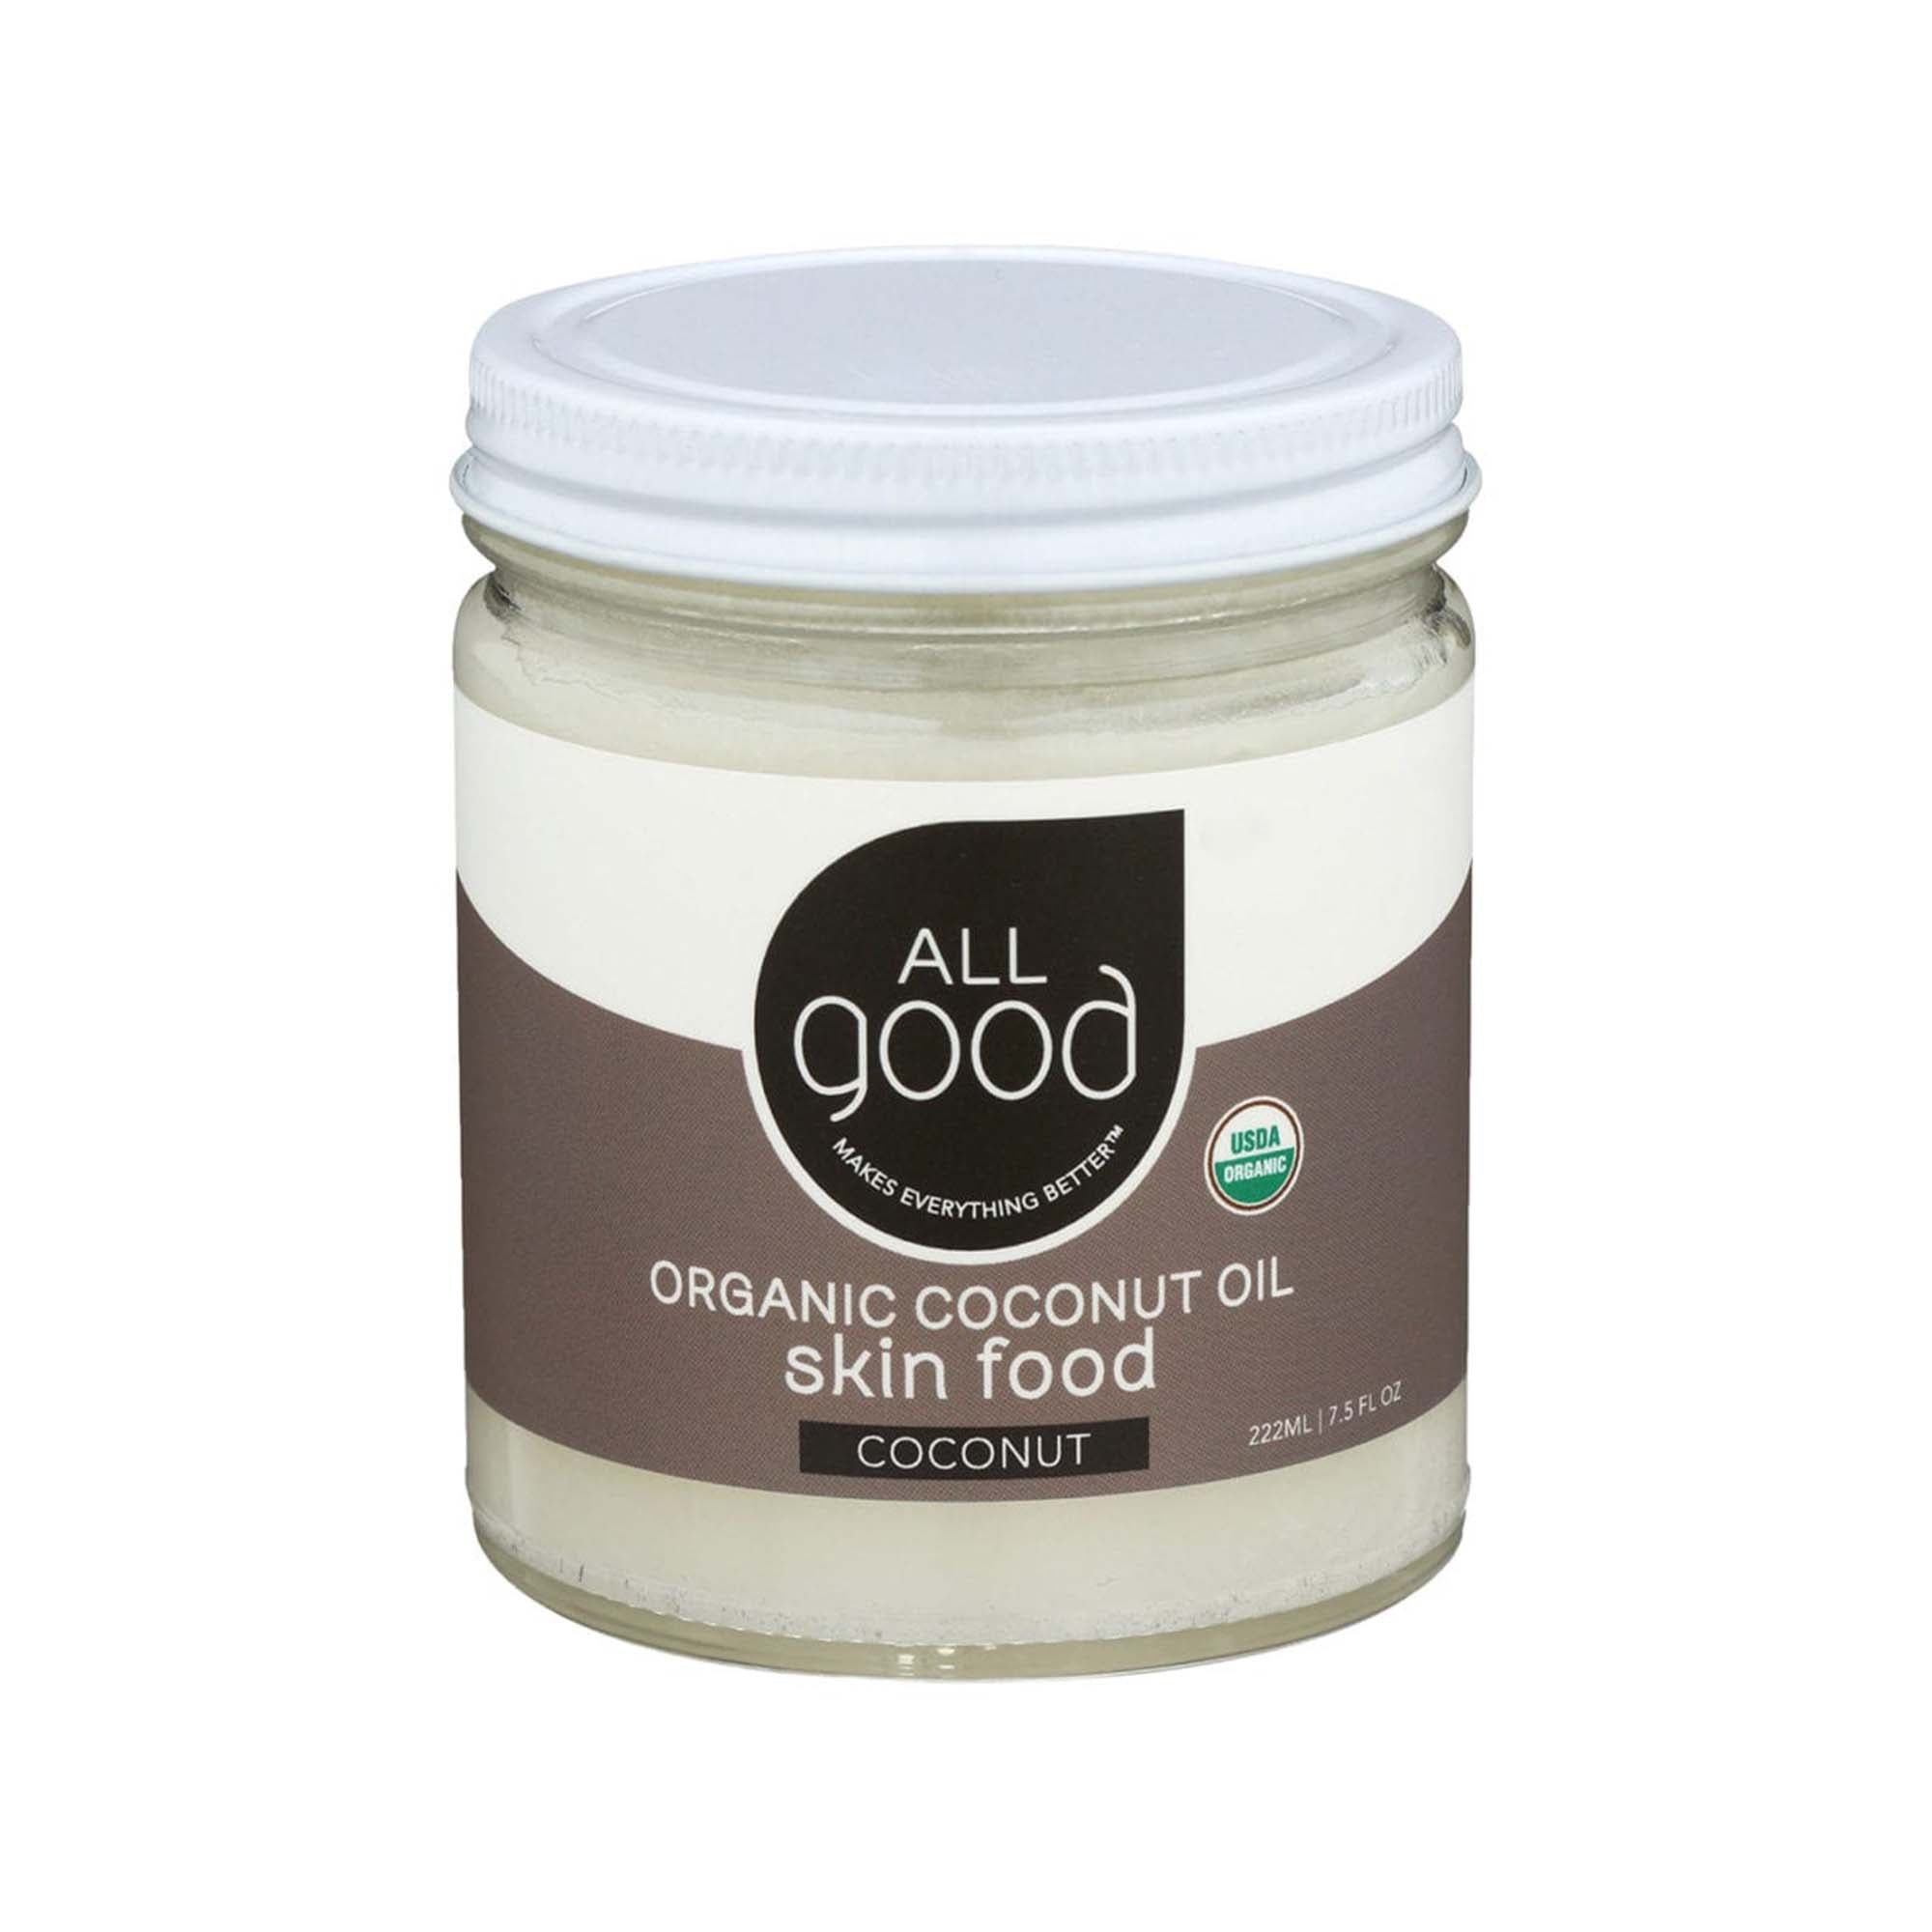 7.5 oz glass jar with white screw top lid. jar contains white coconut oil. usda organic logo visible.